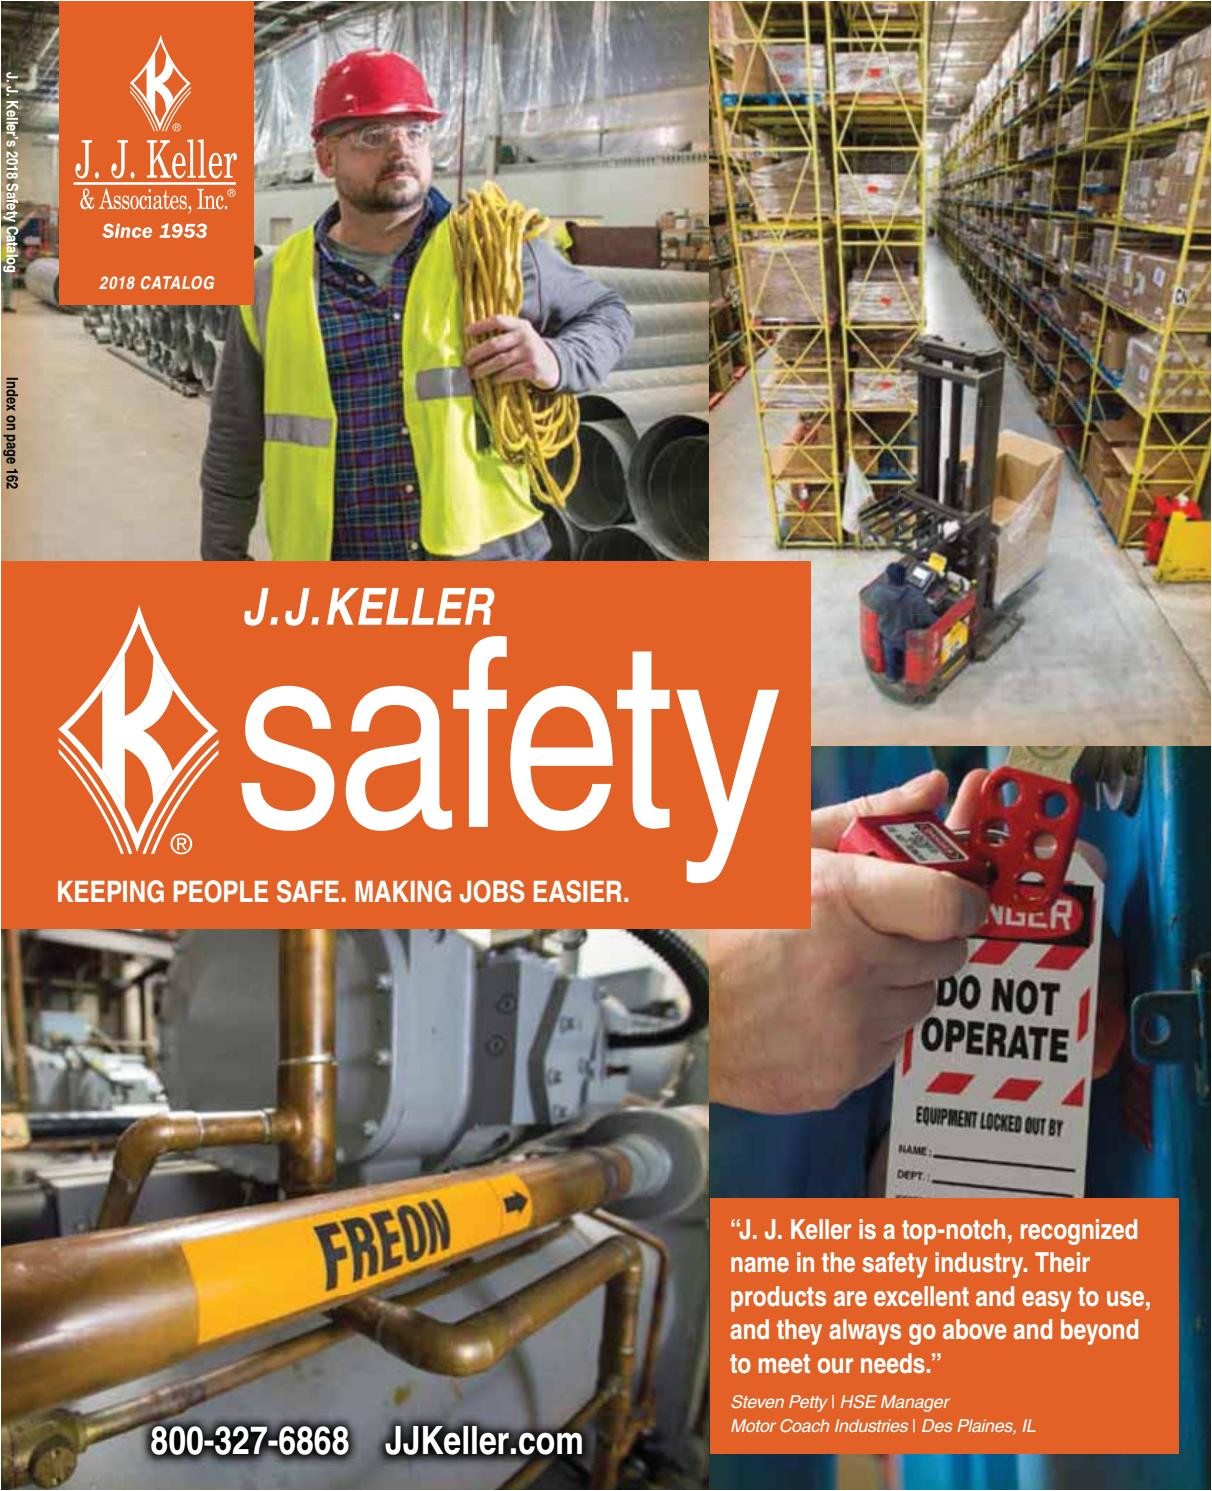 j j keller s 2018 safety catalog by j j keller associates inc issuu